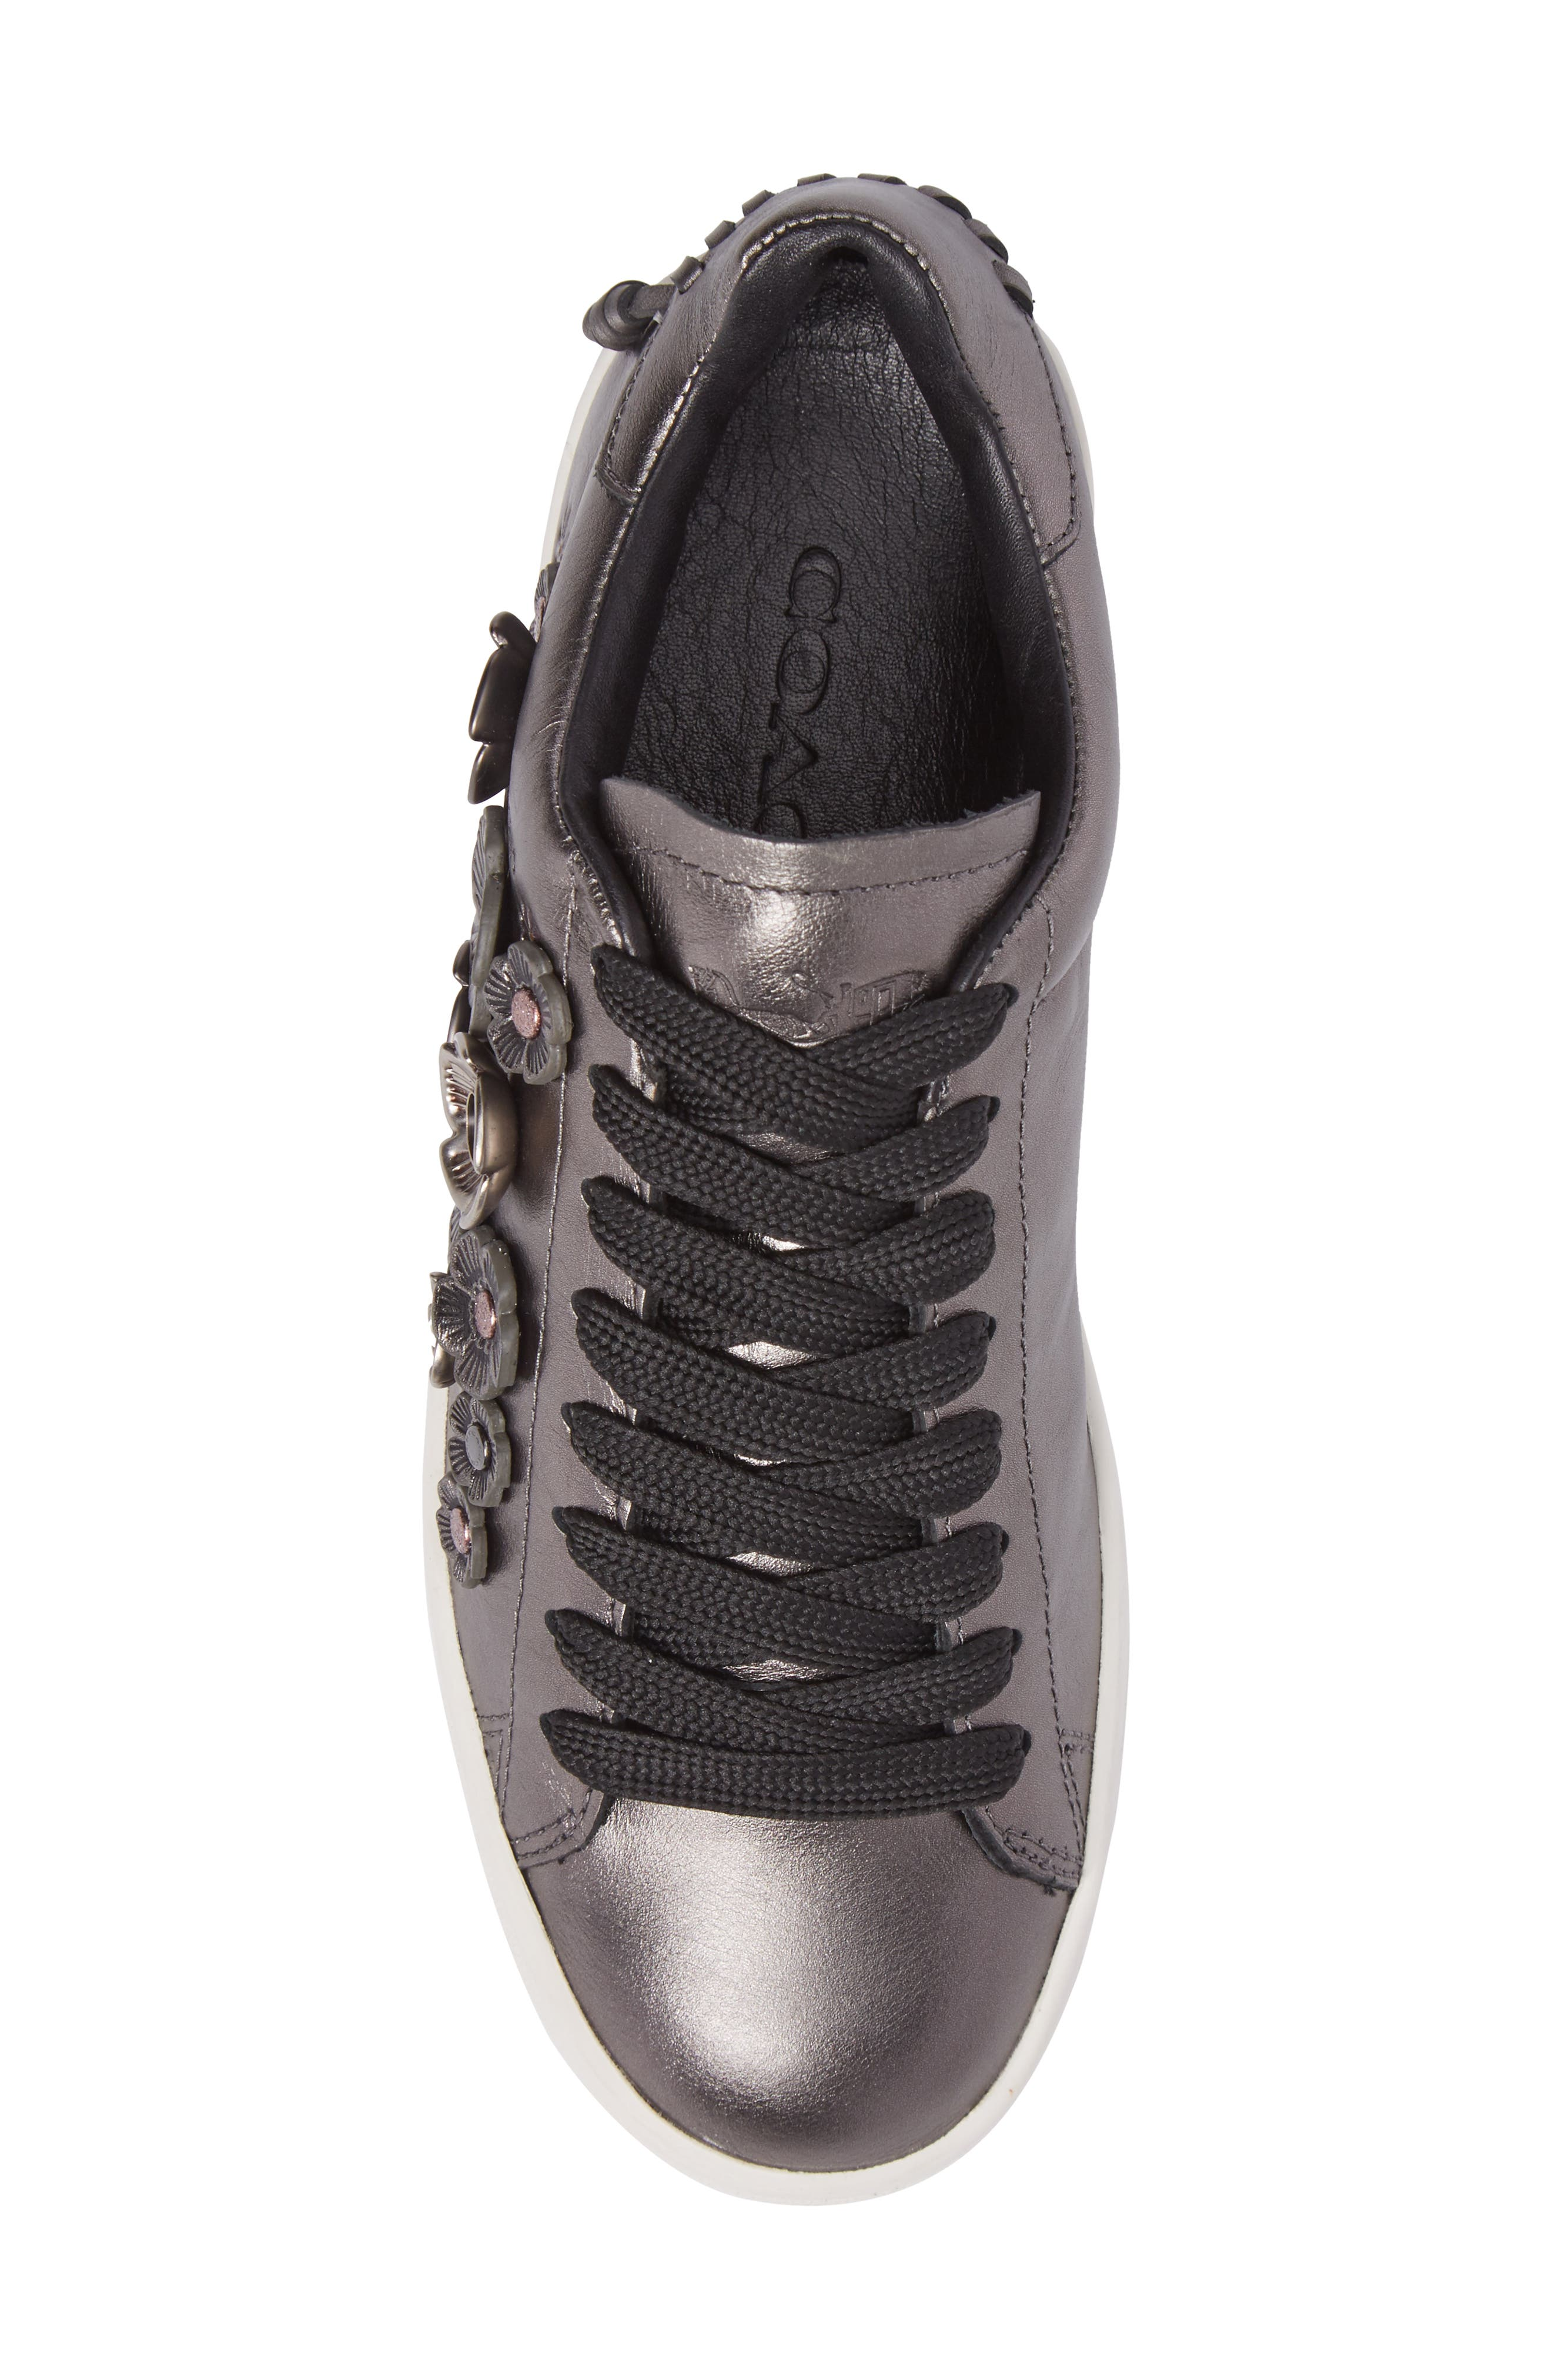 Tea Rose Metallic Sneaker,                             Alternate thumbnail 5, color,                             Gunmetal Leather